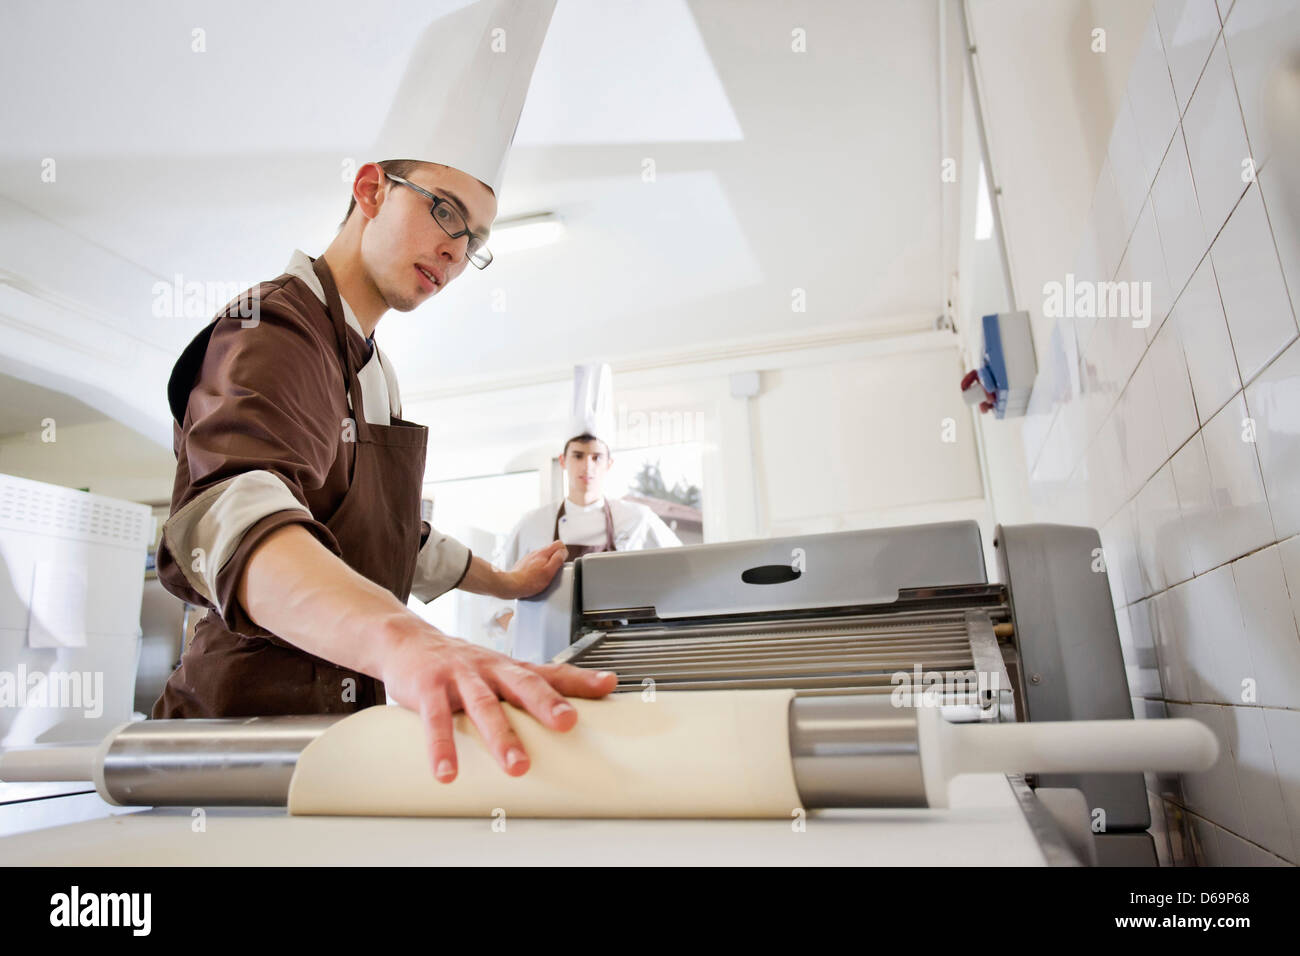 Baker rolling dough in kitchen - Stock Image